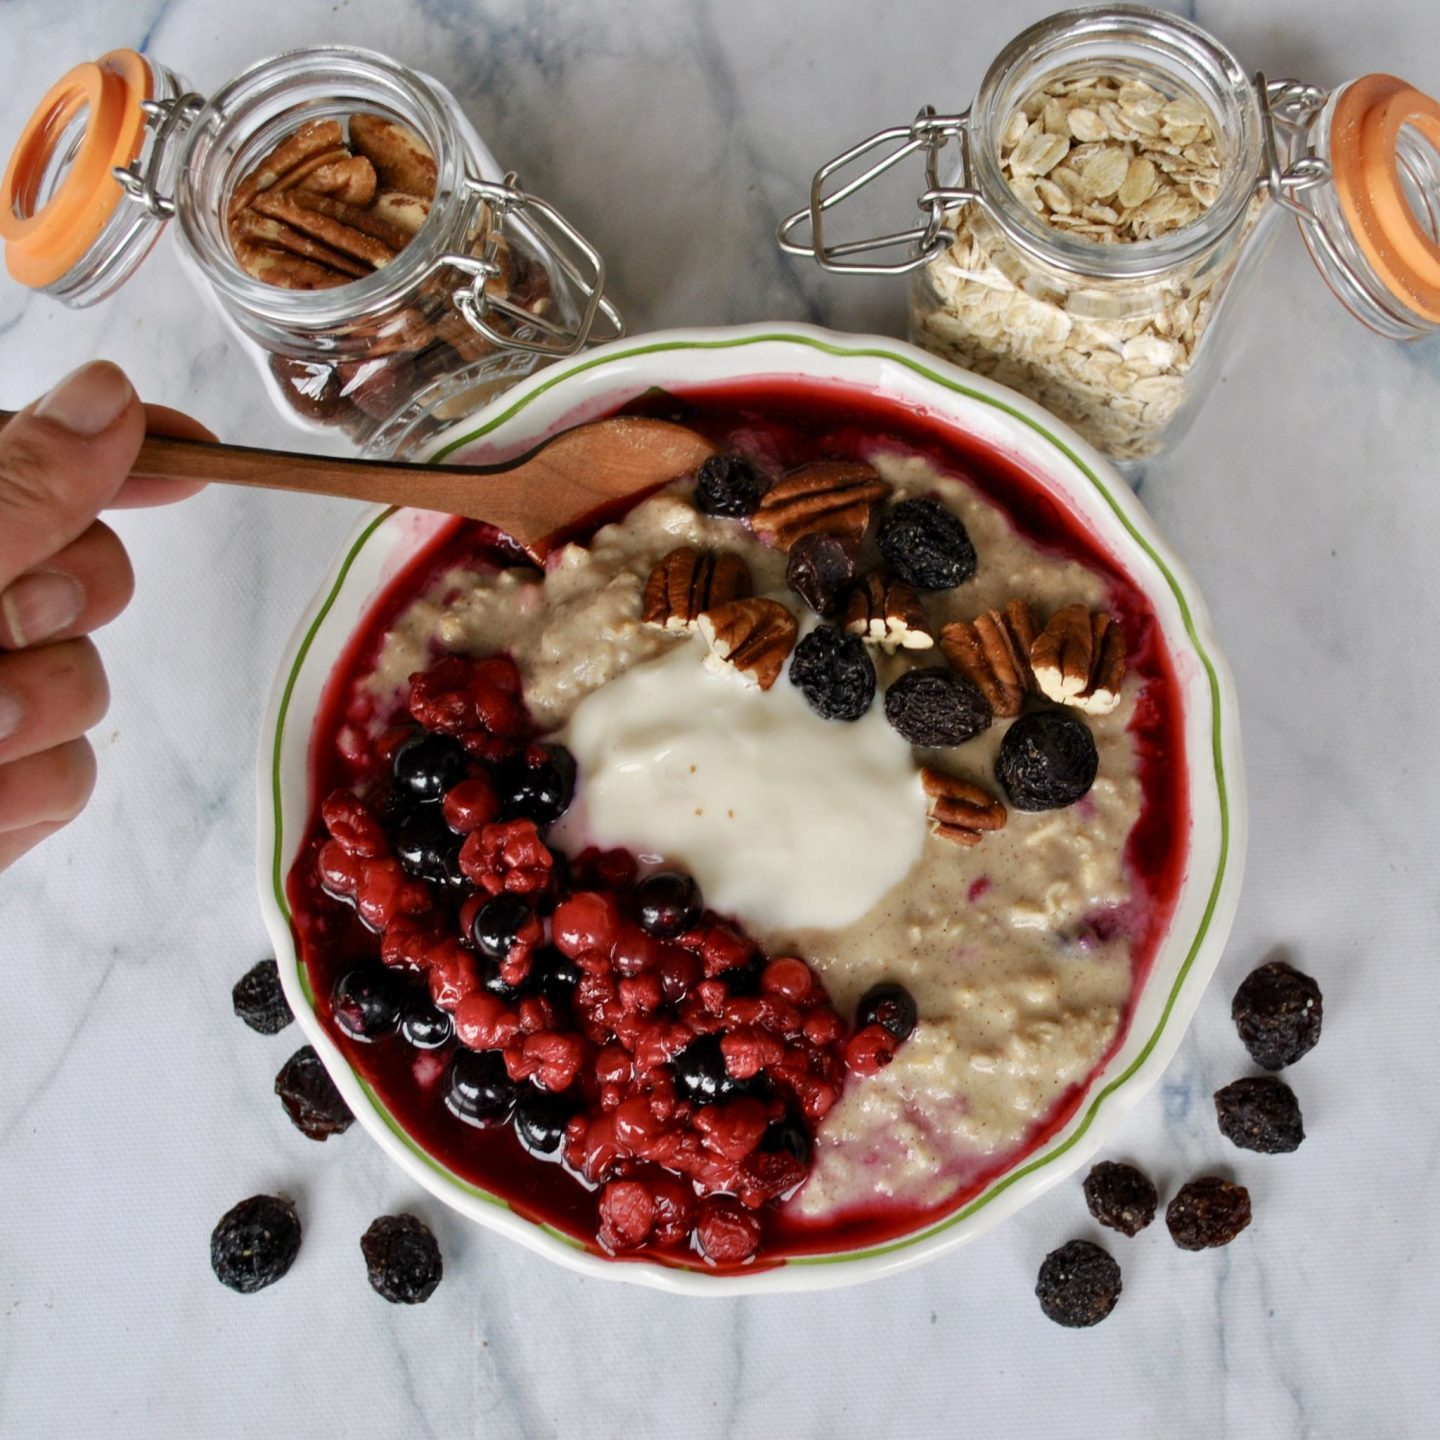 Creamy Coconut Porridge with Berry Compote